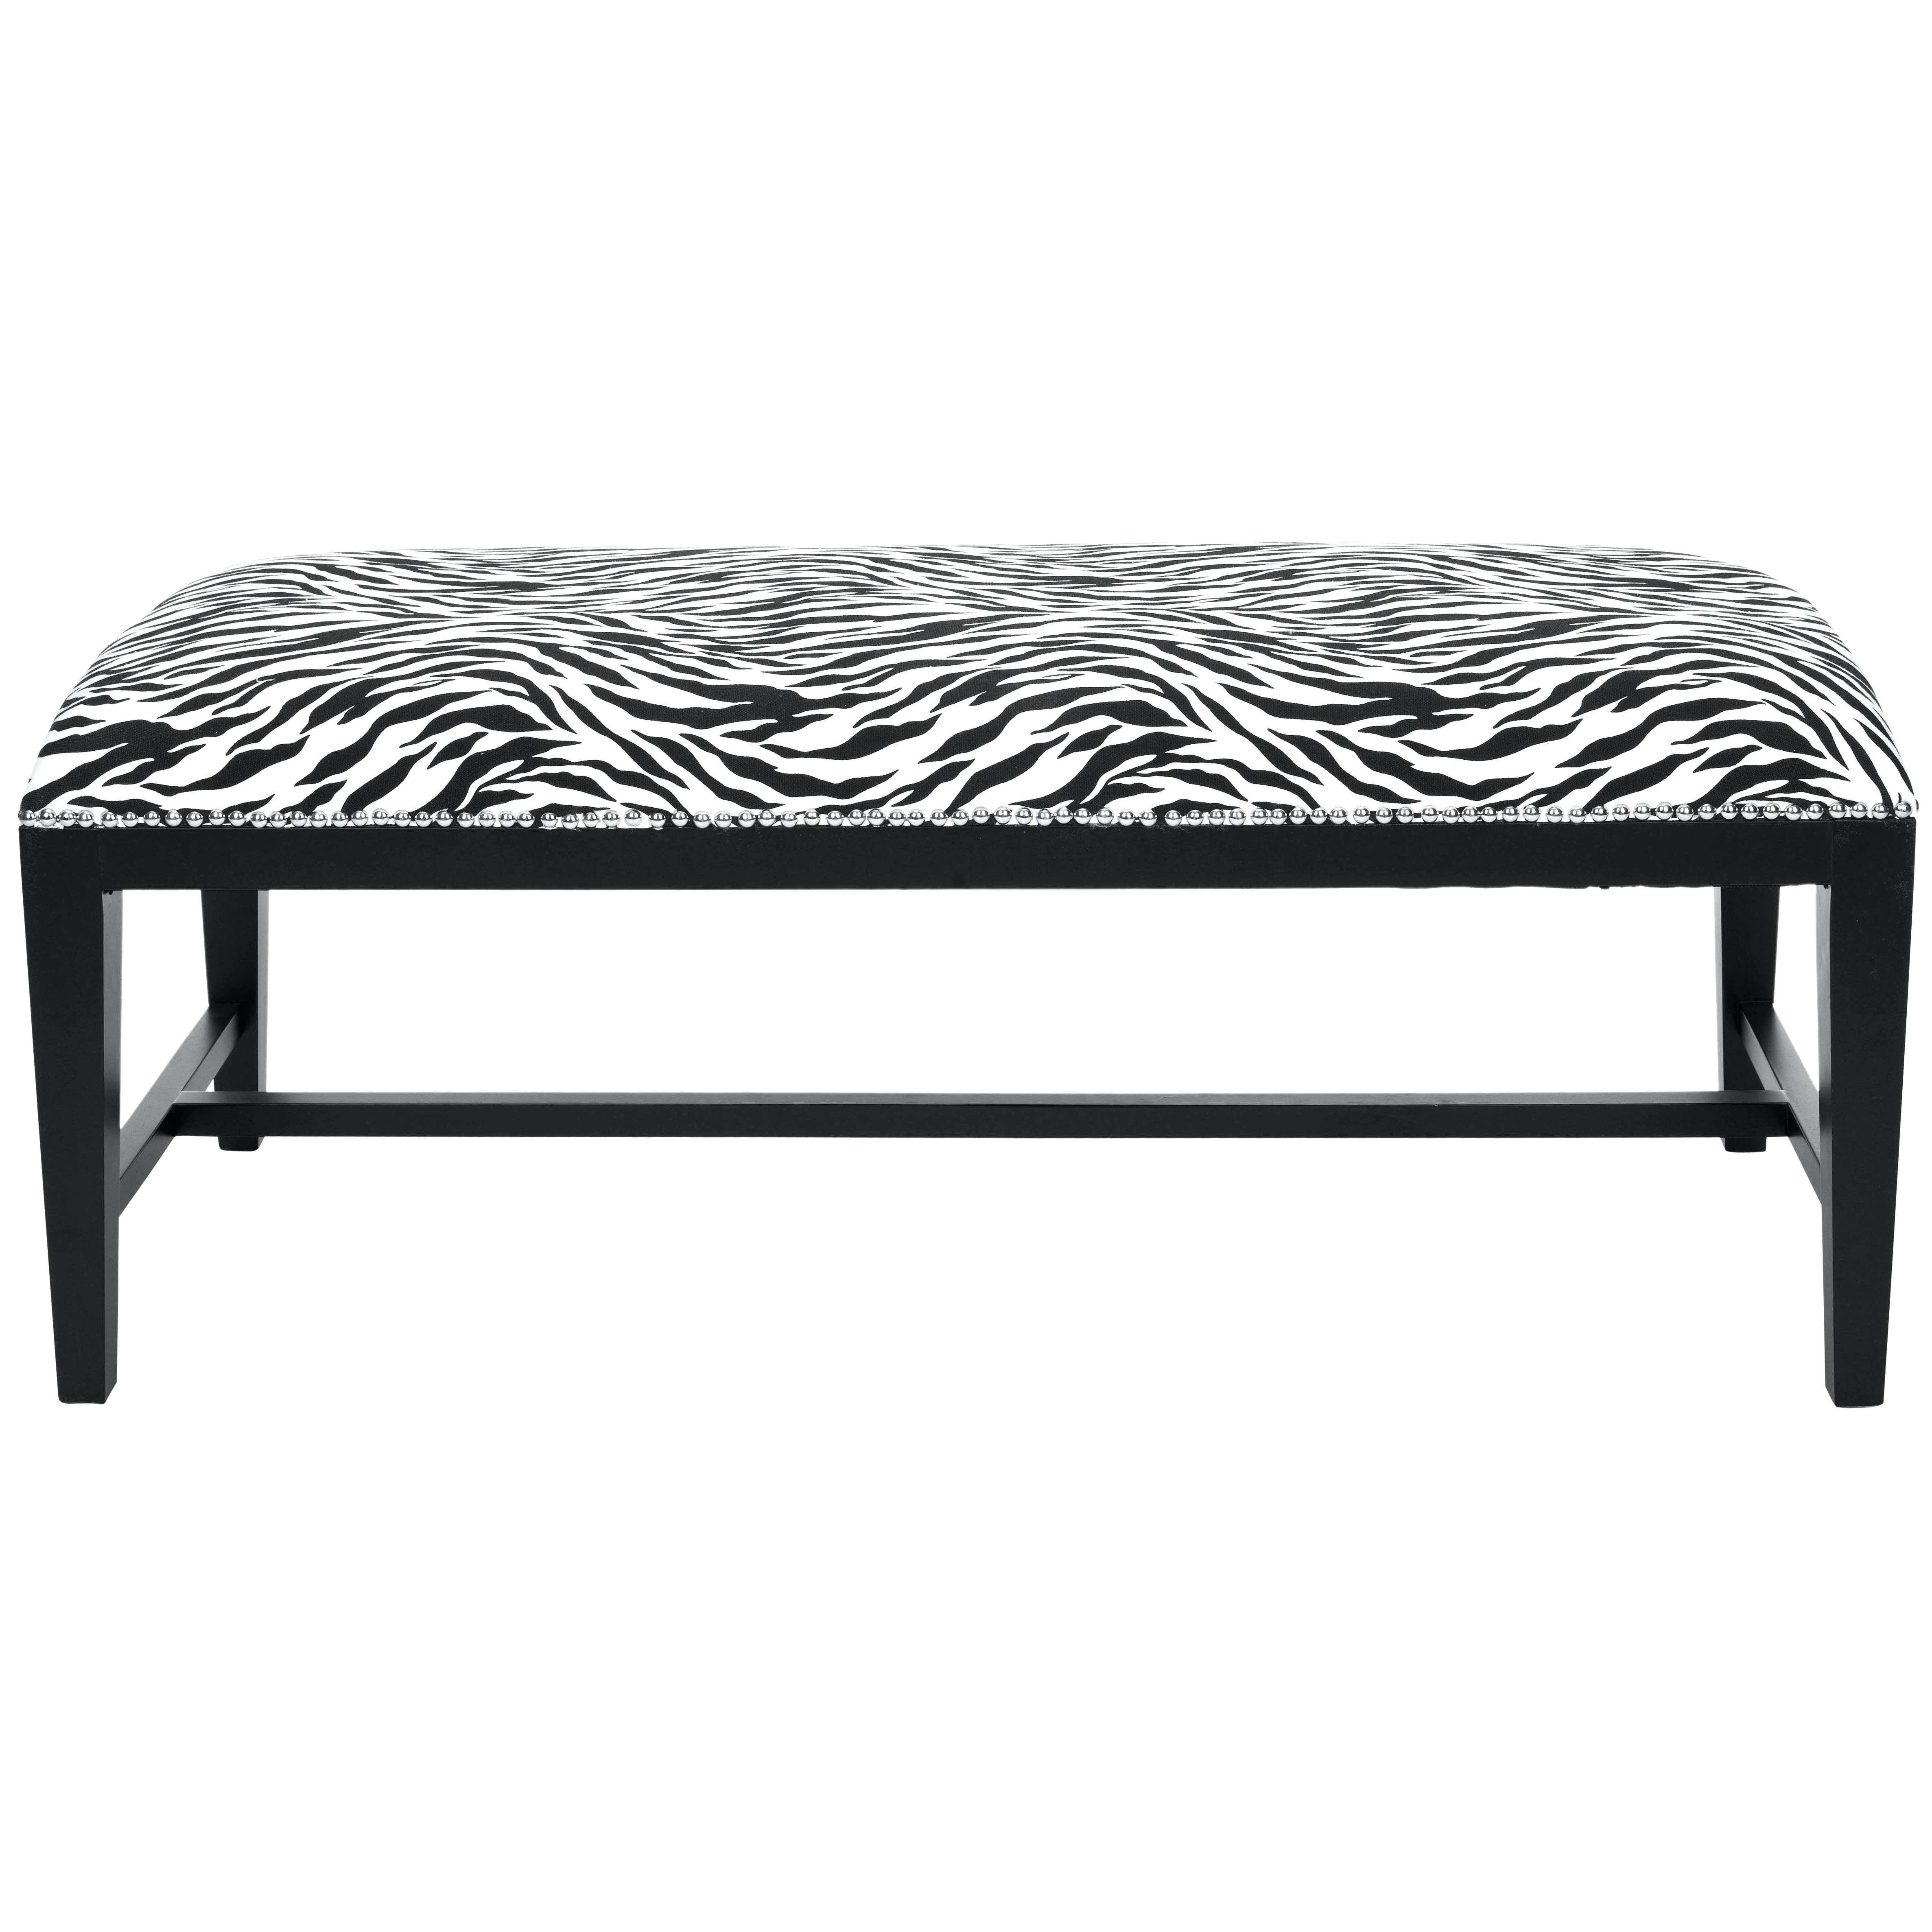 Leopard Print Bench – Nurani Intended For Well Liked Leopard Ottoman Coffee Tables (View 14 of 20)